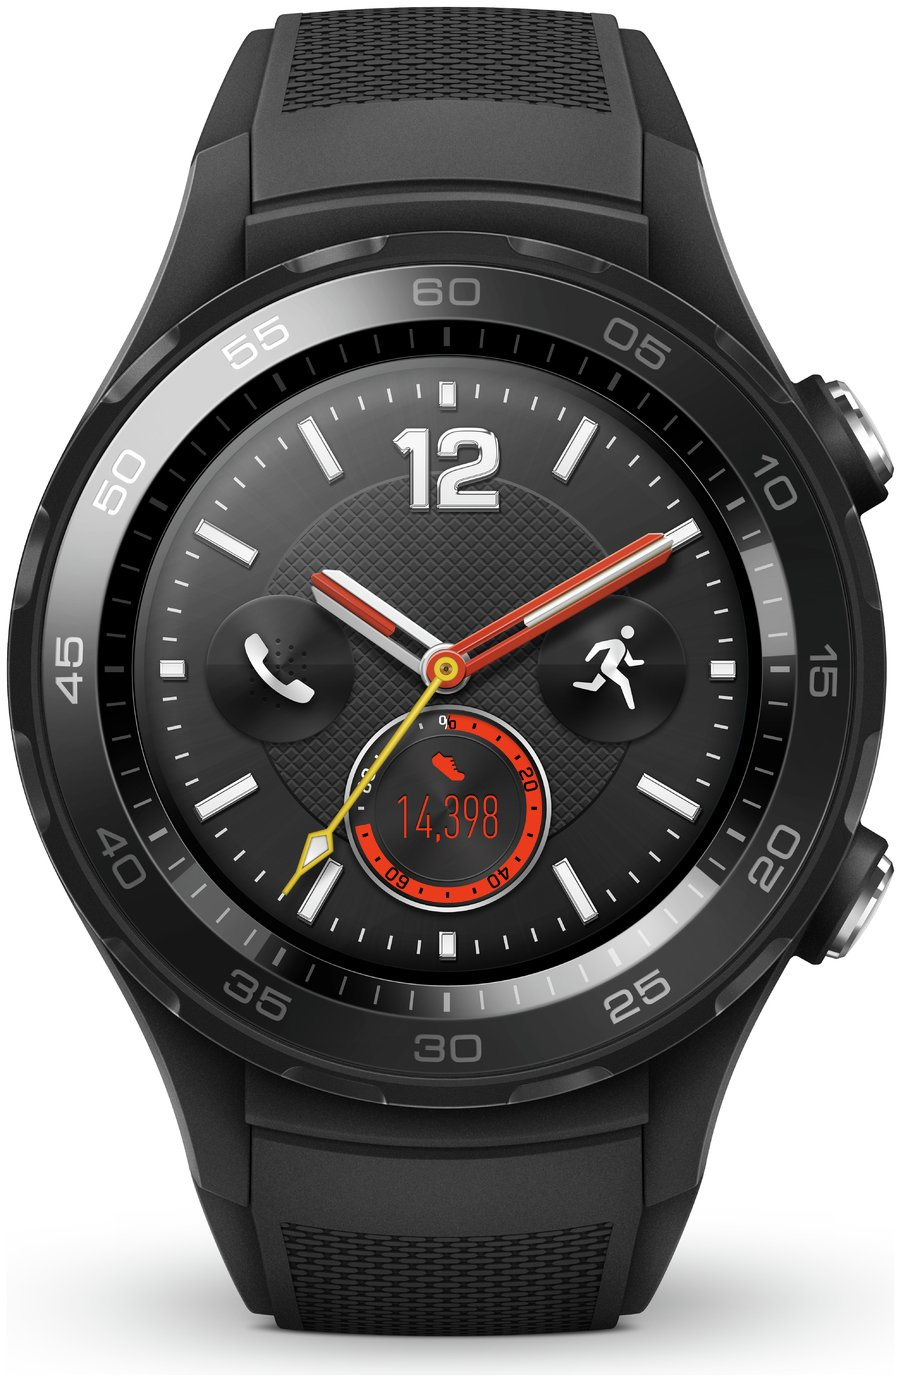 Image of Huawei Watch2 4G Sport Smart Watch - Black